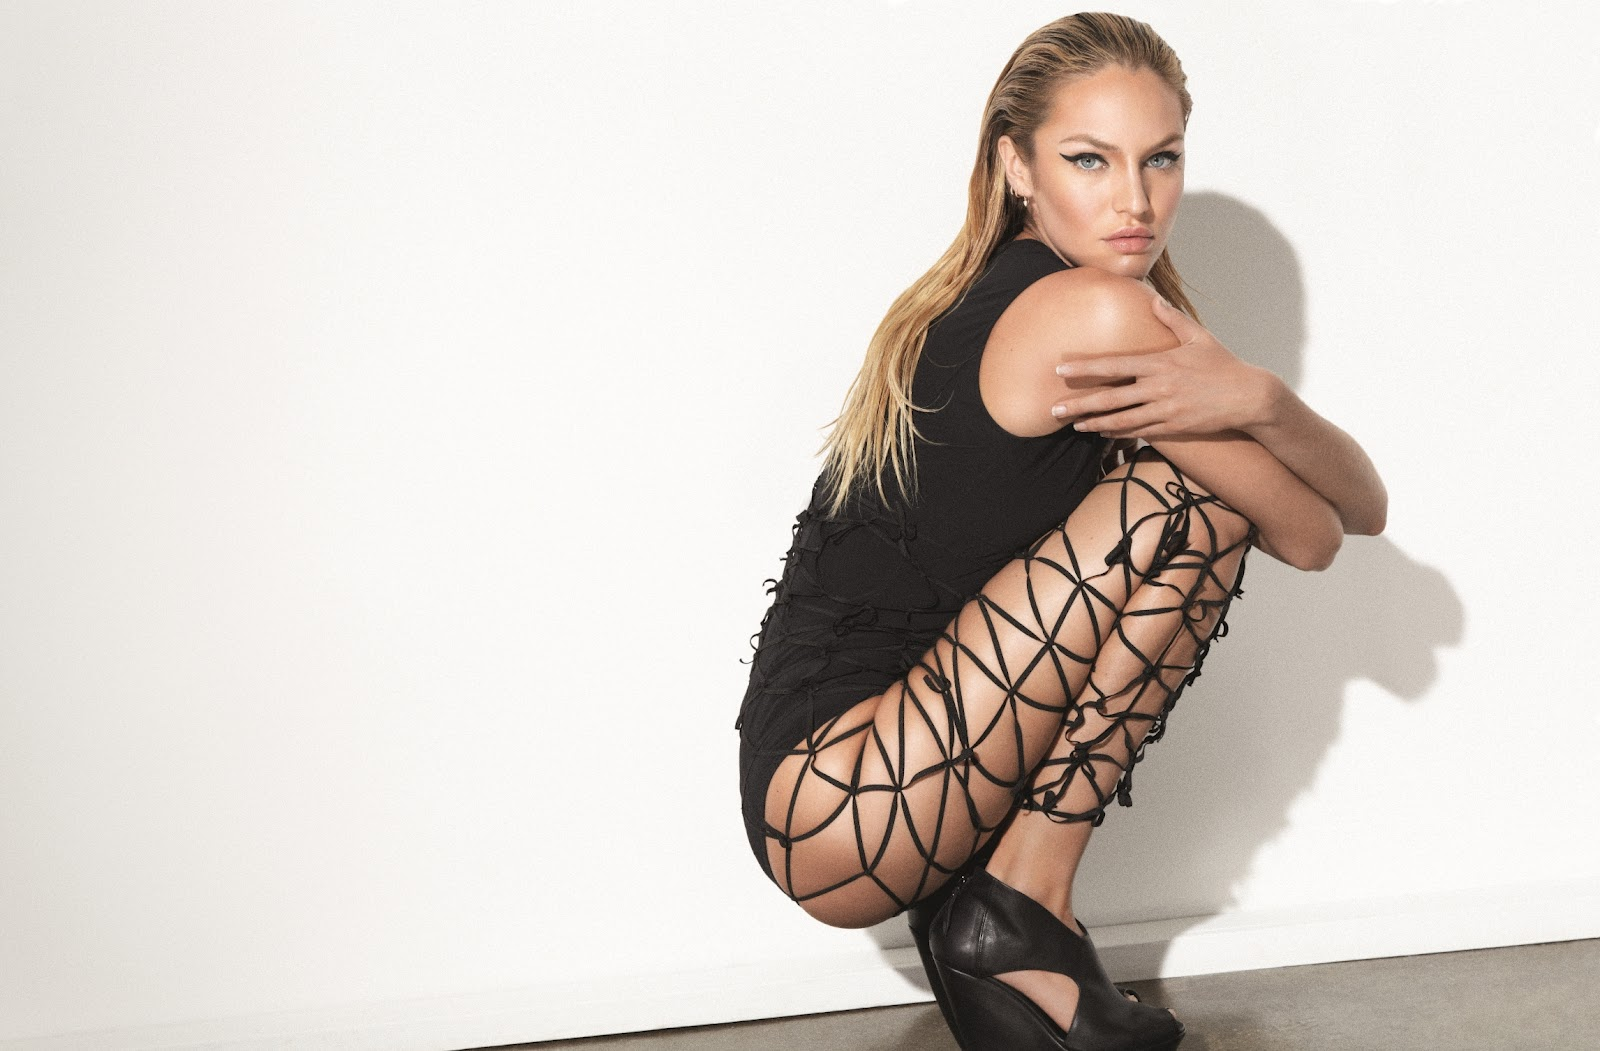 candy cane candice swanepoel by collier schorr for muse 30